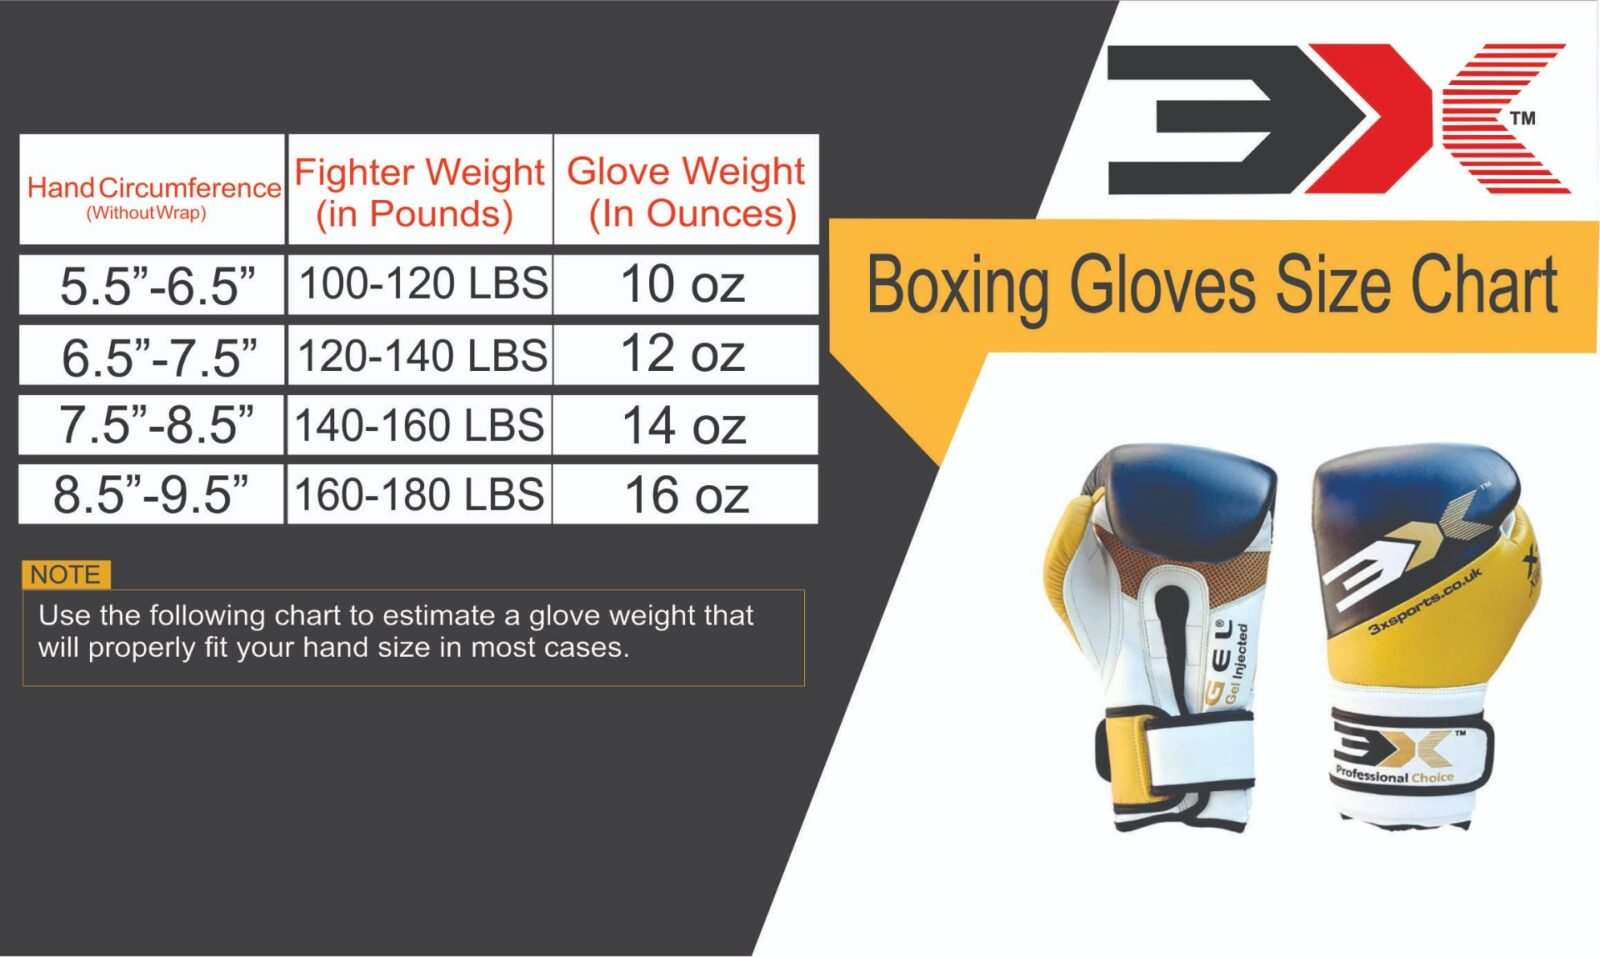 3x Sports Professional Choice BG-3X-07-02 Leather Boxing Gloves(GOLDEN/BLACK)-1229